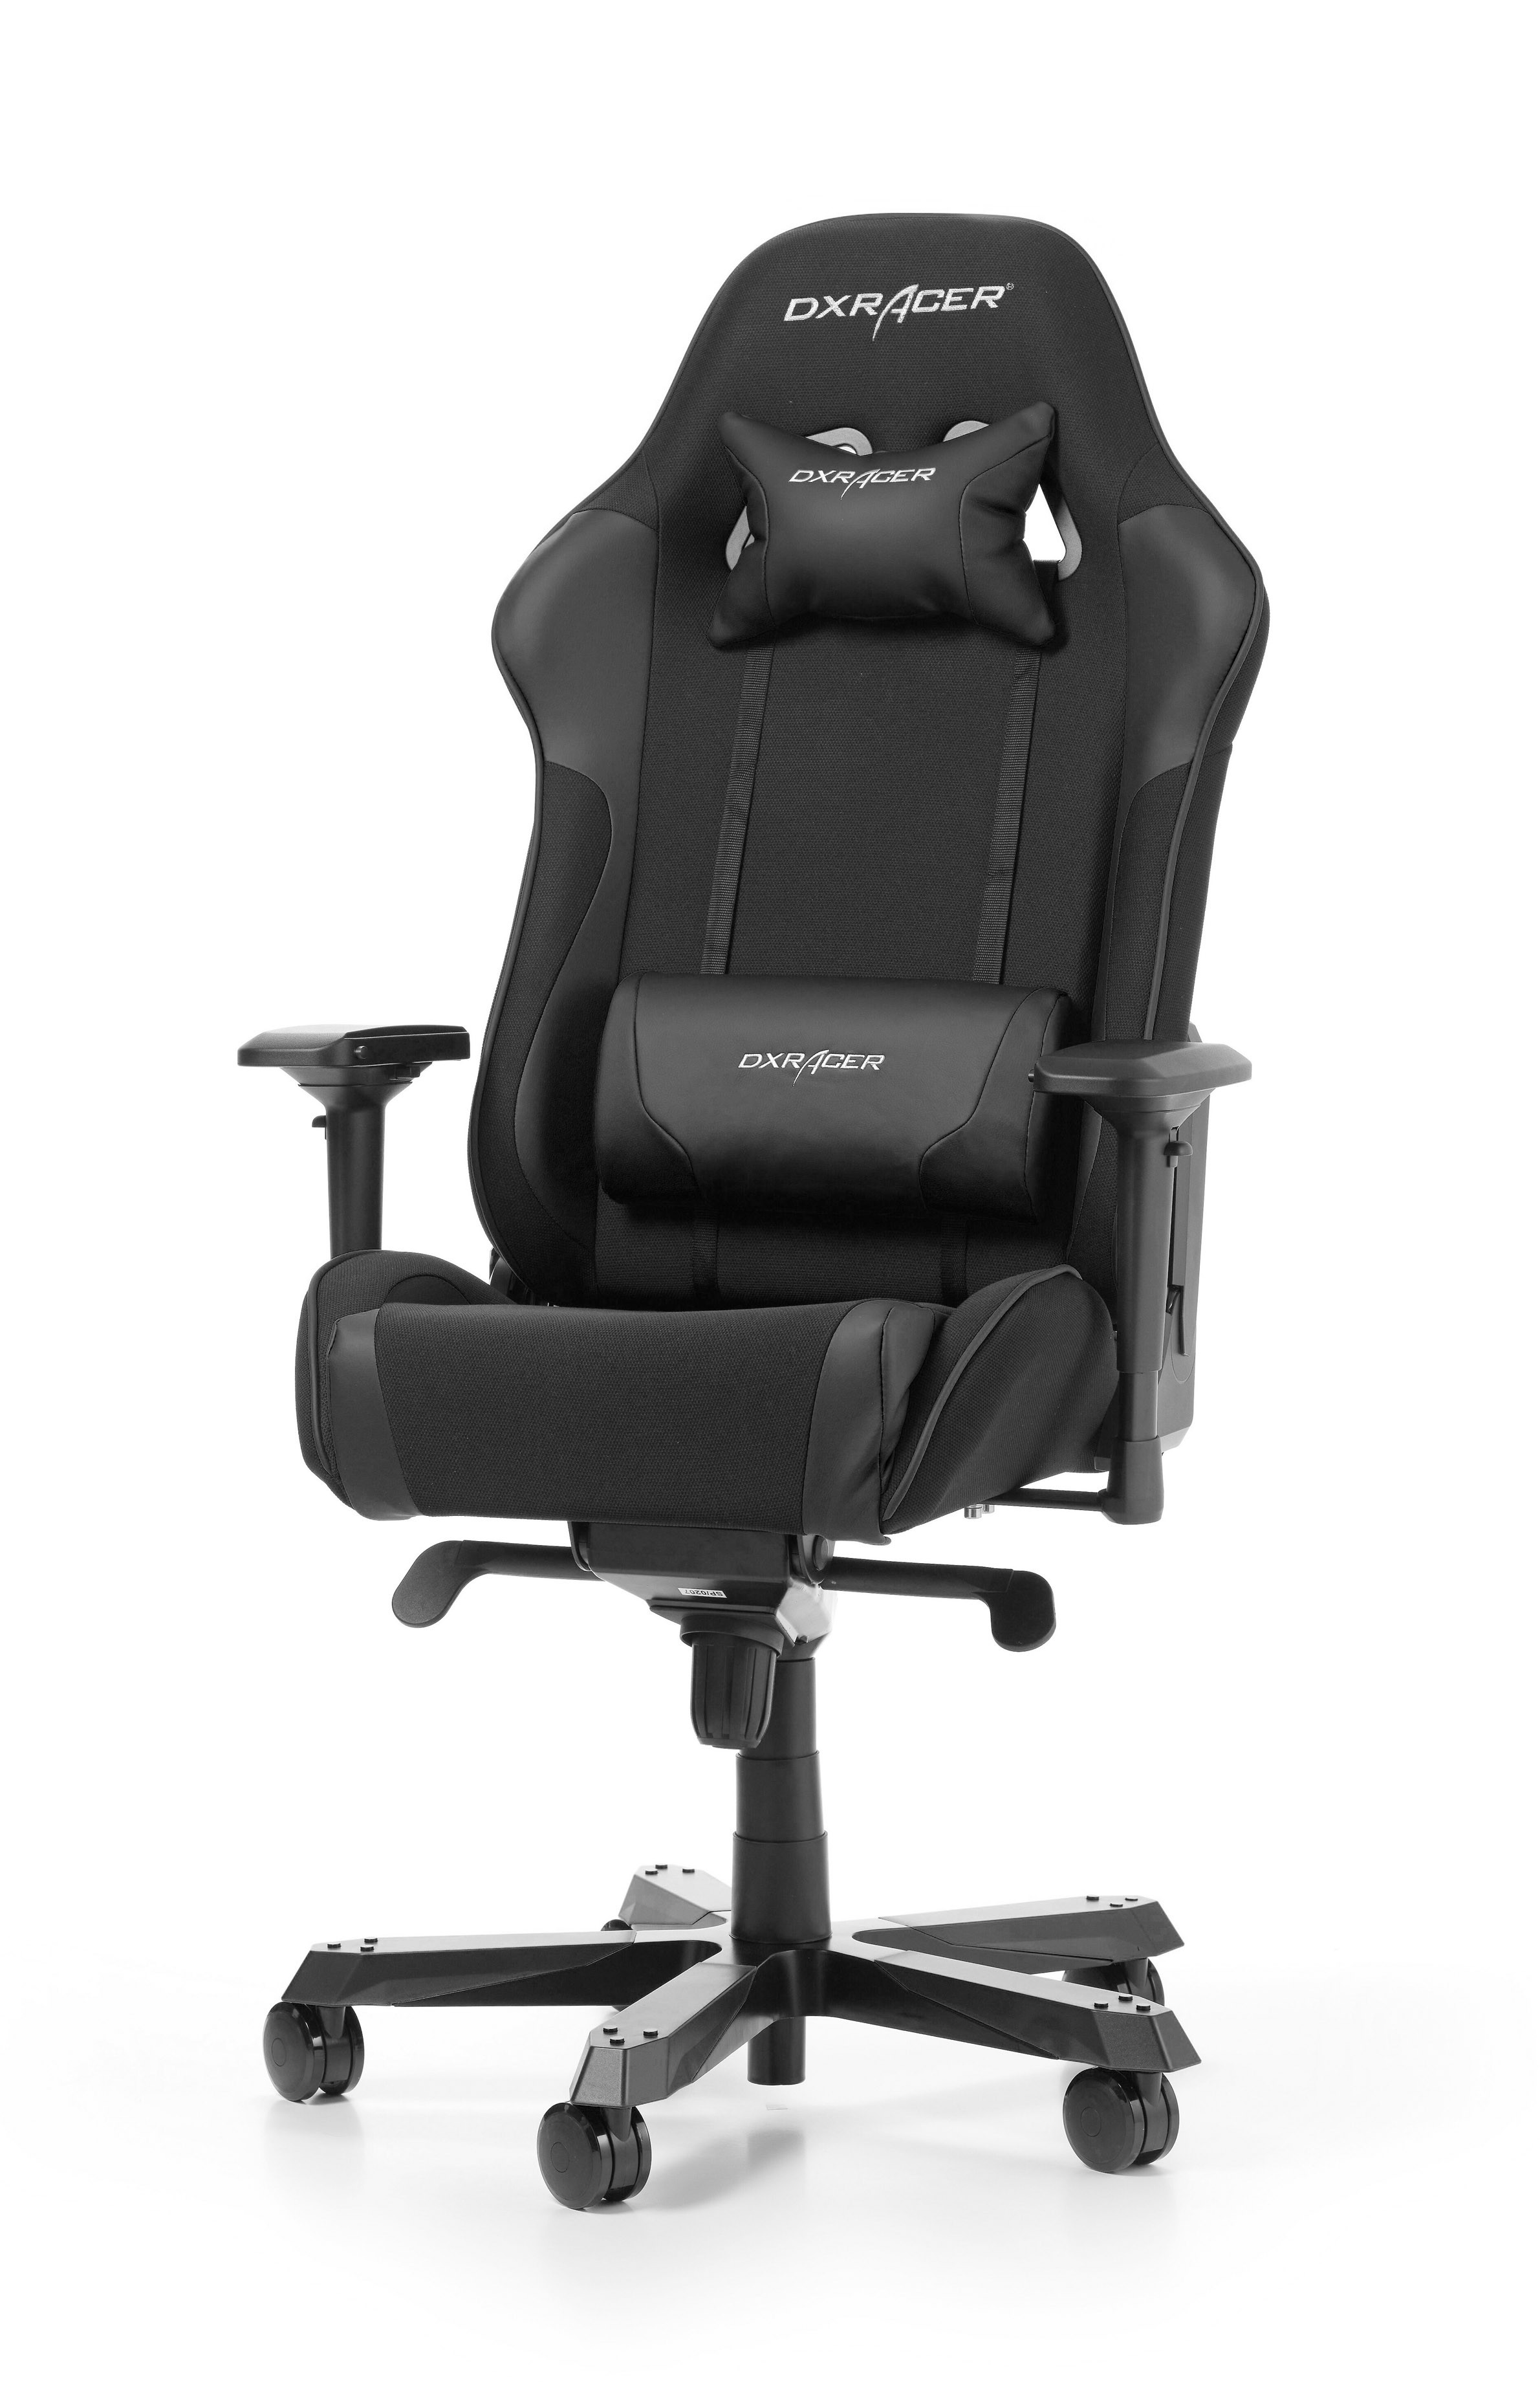 GAMING CHAIR DXRACER KING SERIES K57-NW WHITE